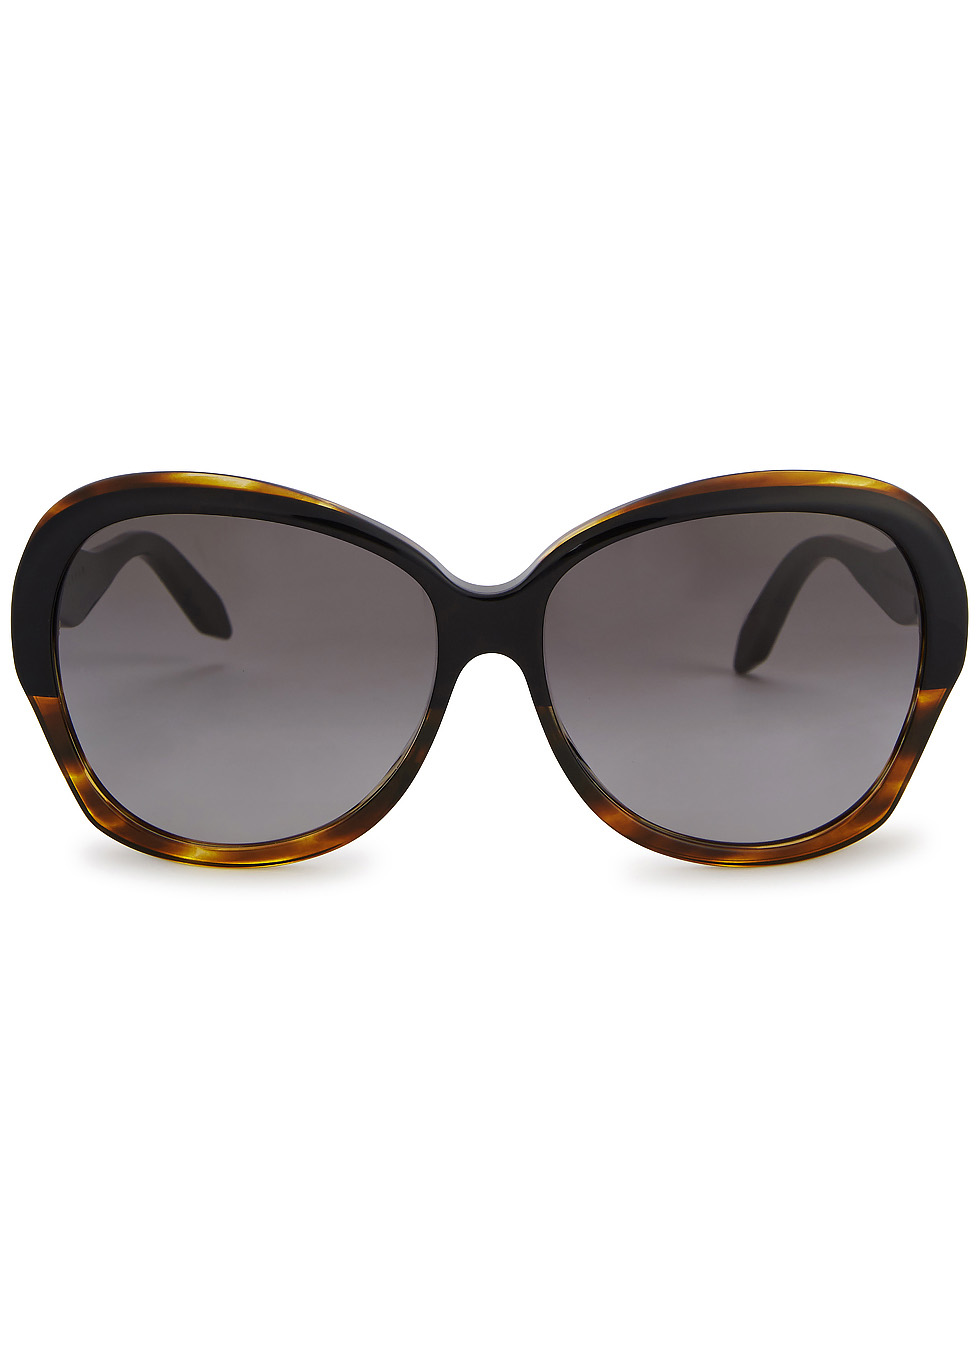 Happy Butterfly oversized sunglasses - Victoria Beckham